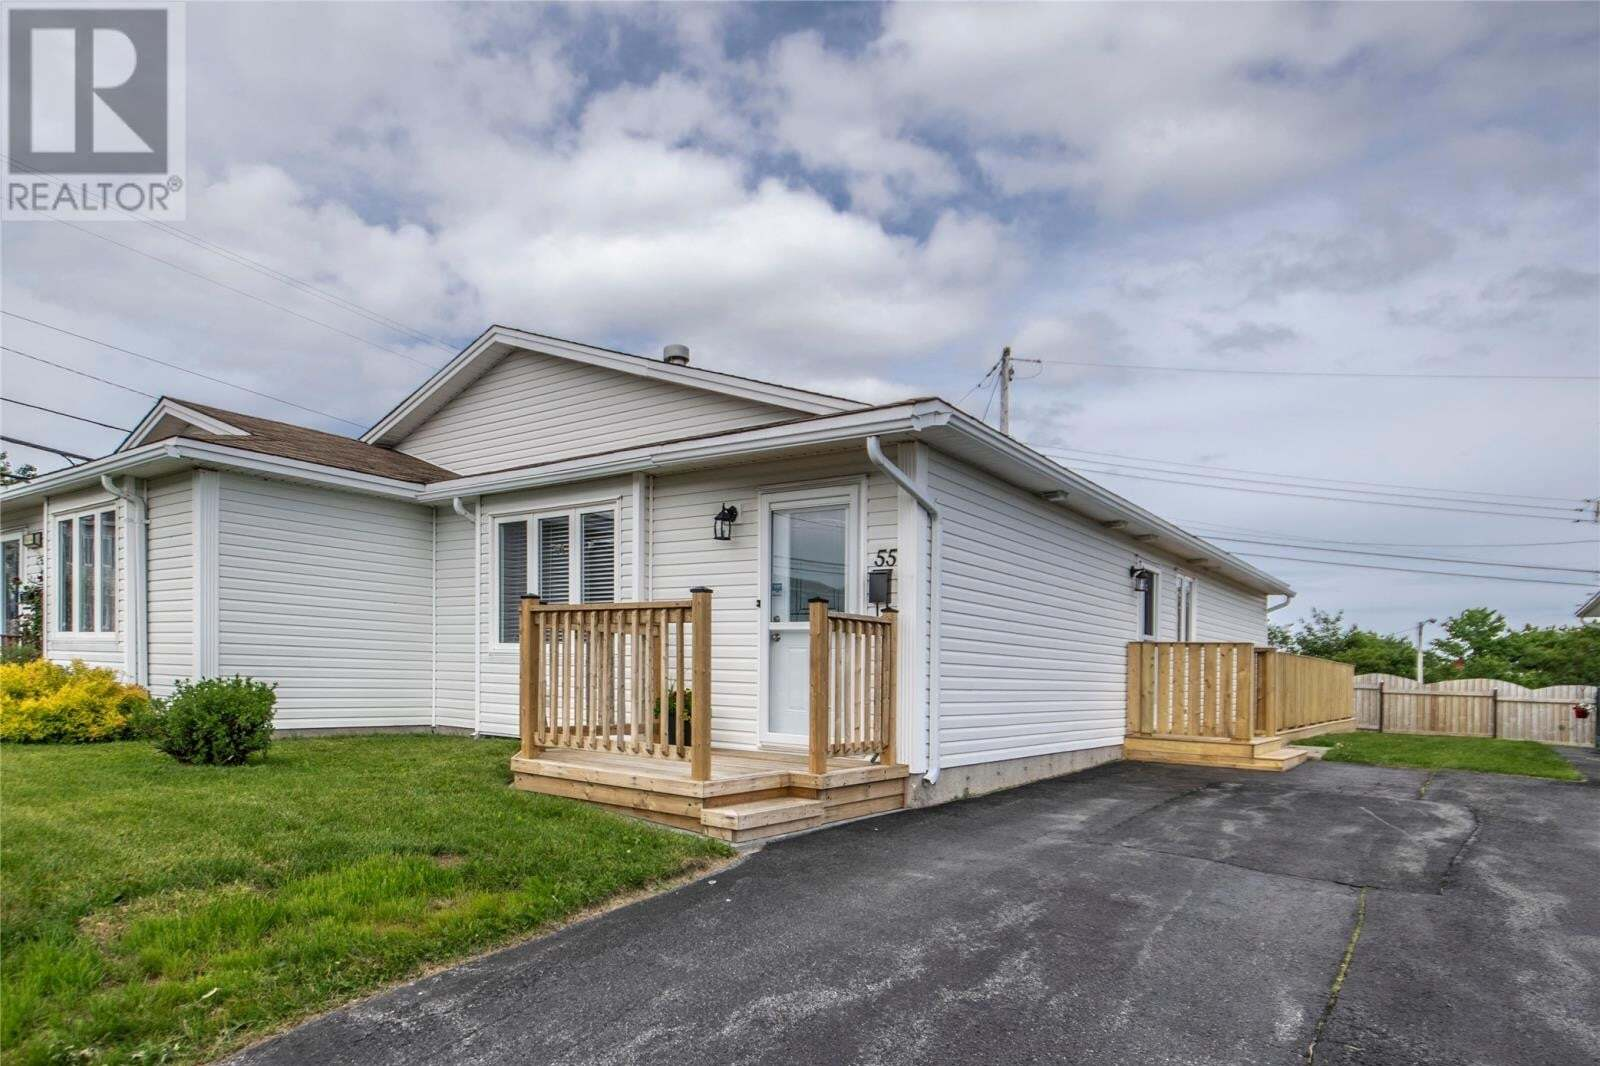 House for sale at 55 Clover Brae Cres Mount Pearl Newfoundland - MLS: 1217645